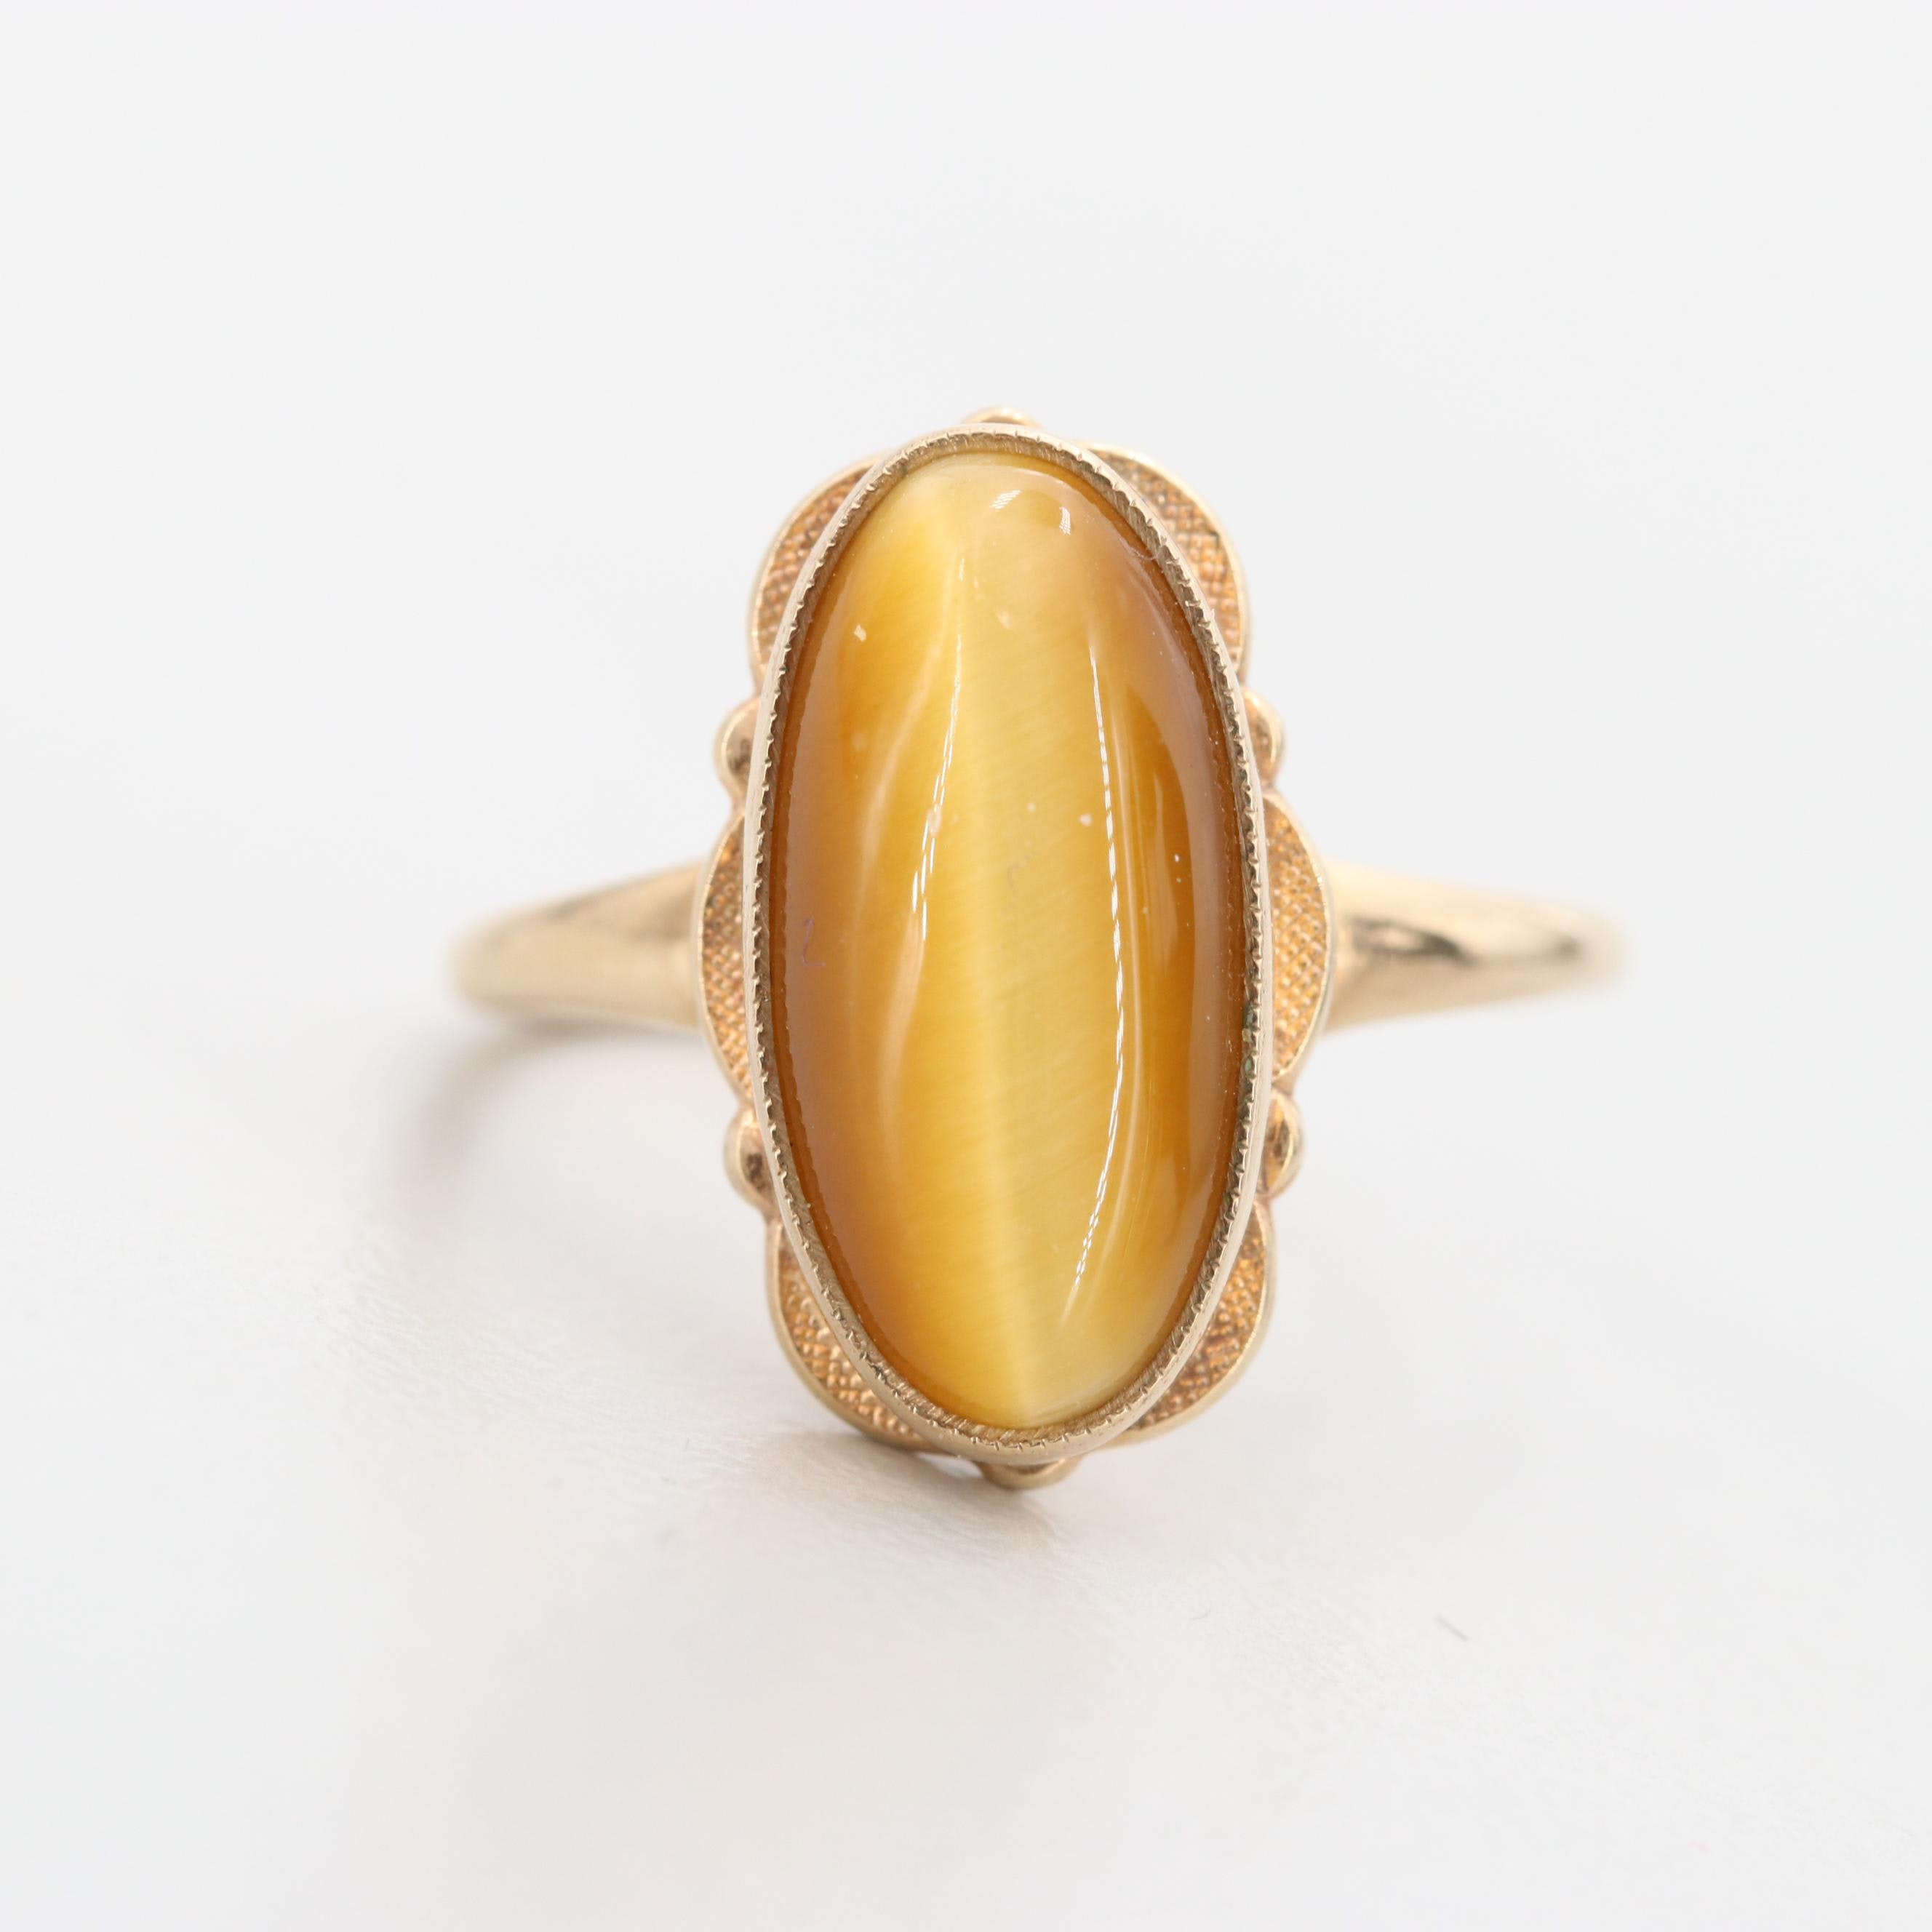 Vintage 10K Yellow Gold Tiger's Eye Ring